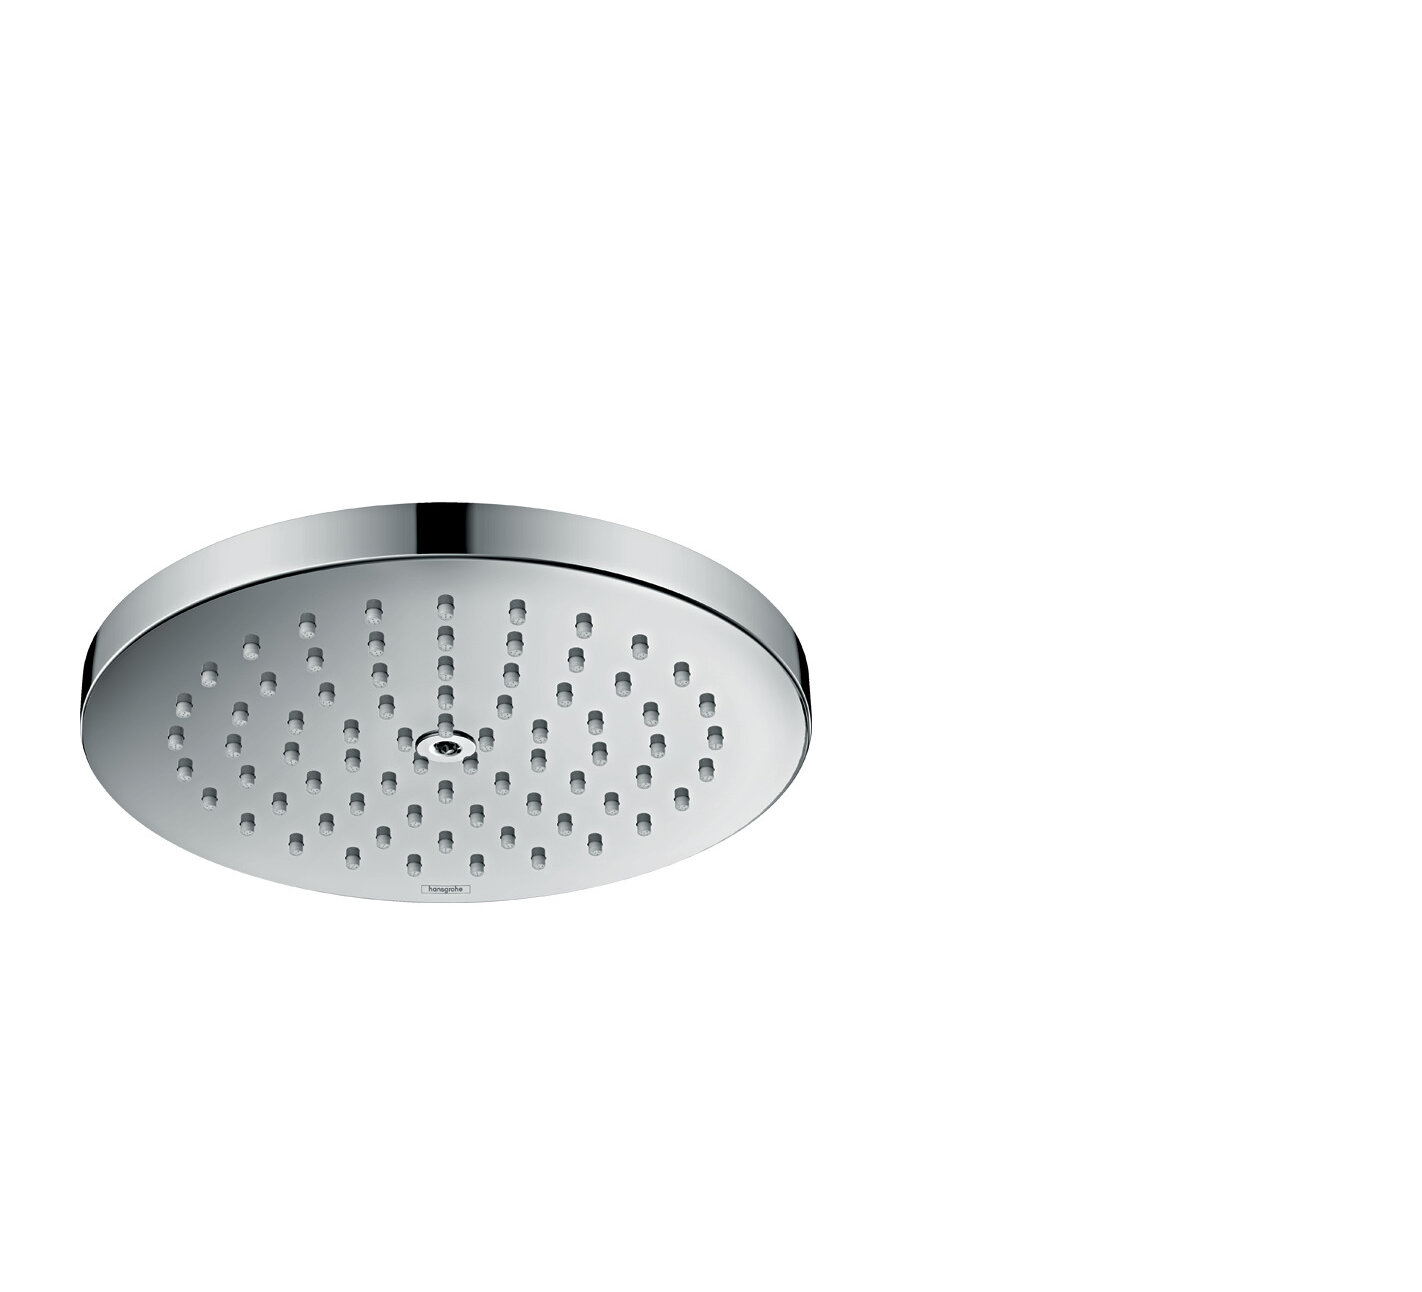 Raindance S Low Flow Water Saving Rain Shower Head With Airpower